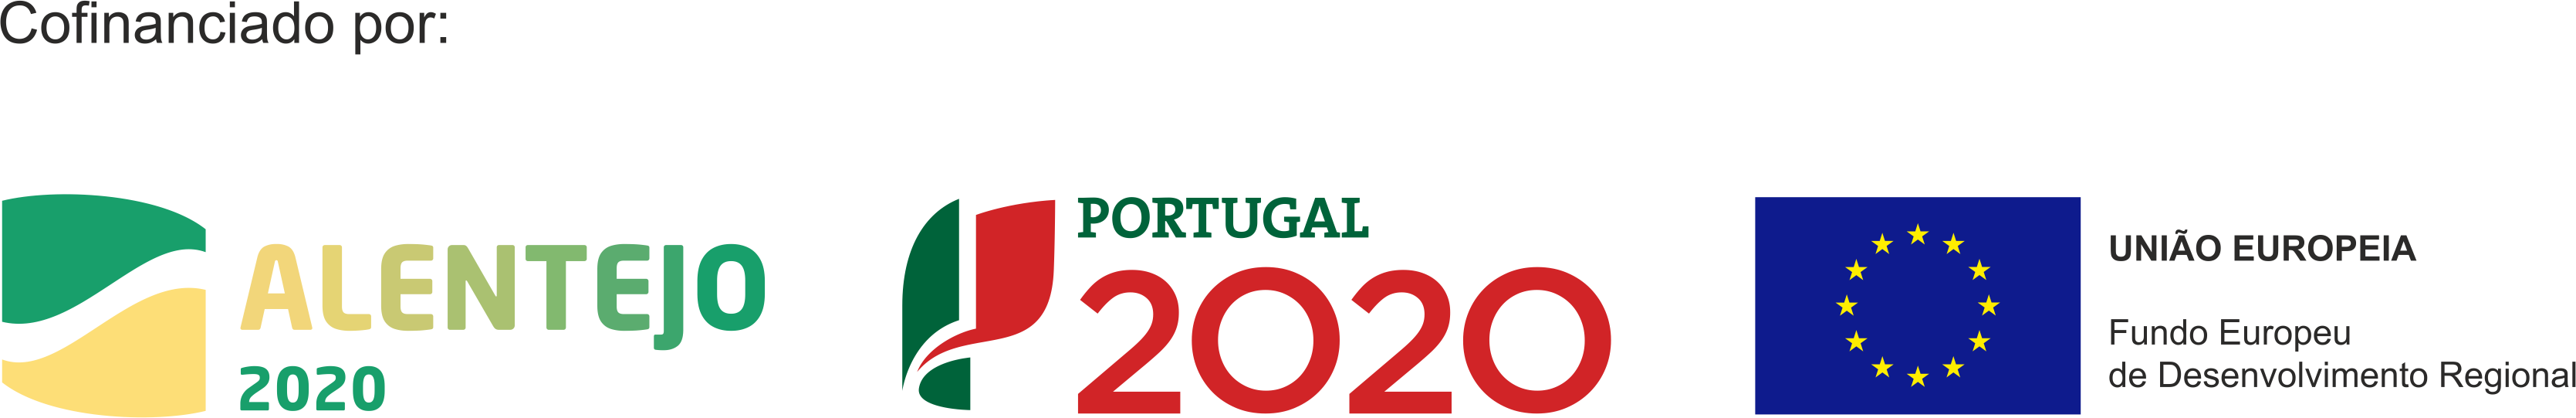 portugal2020new